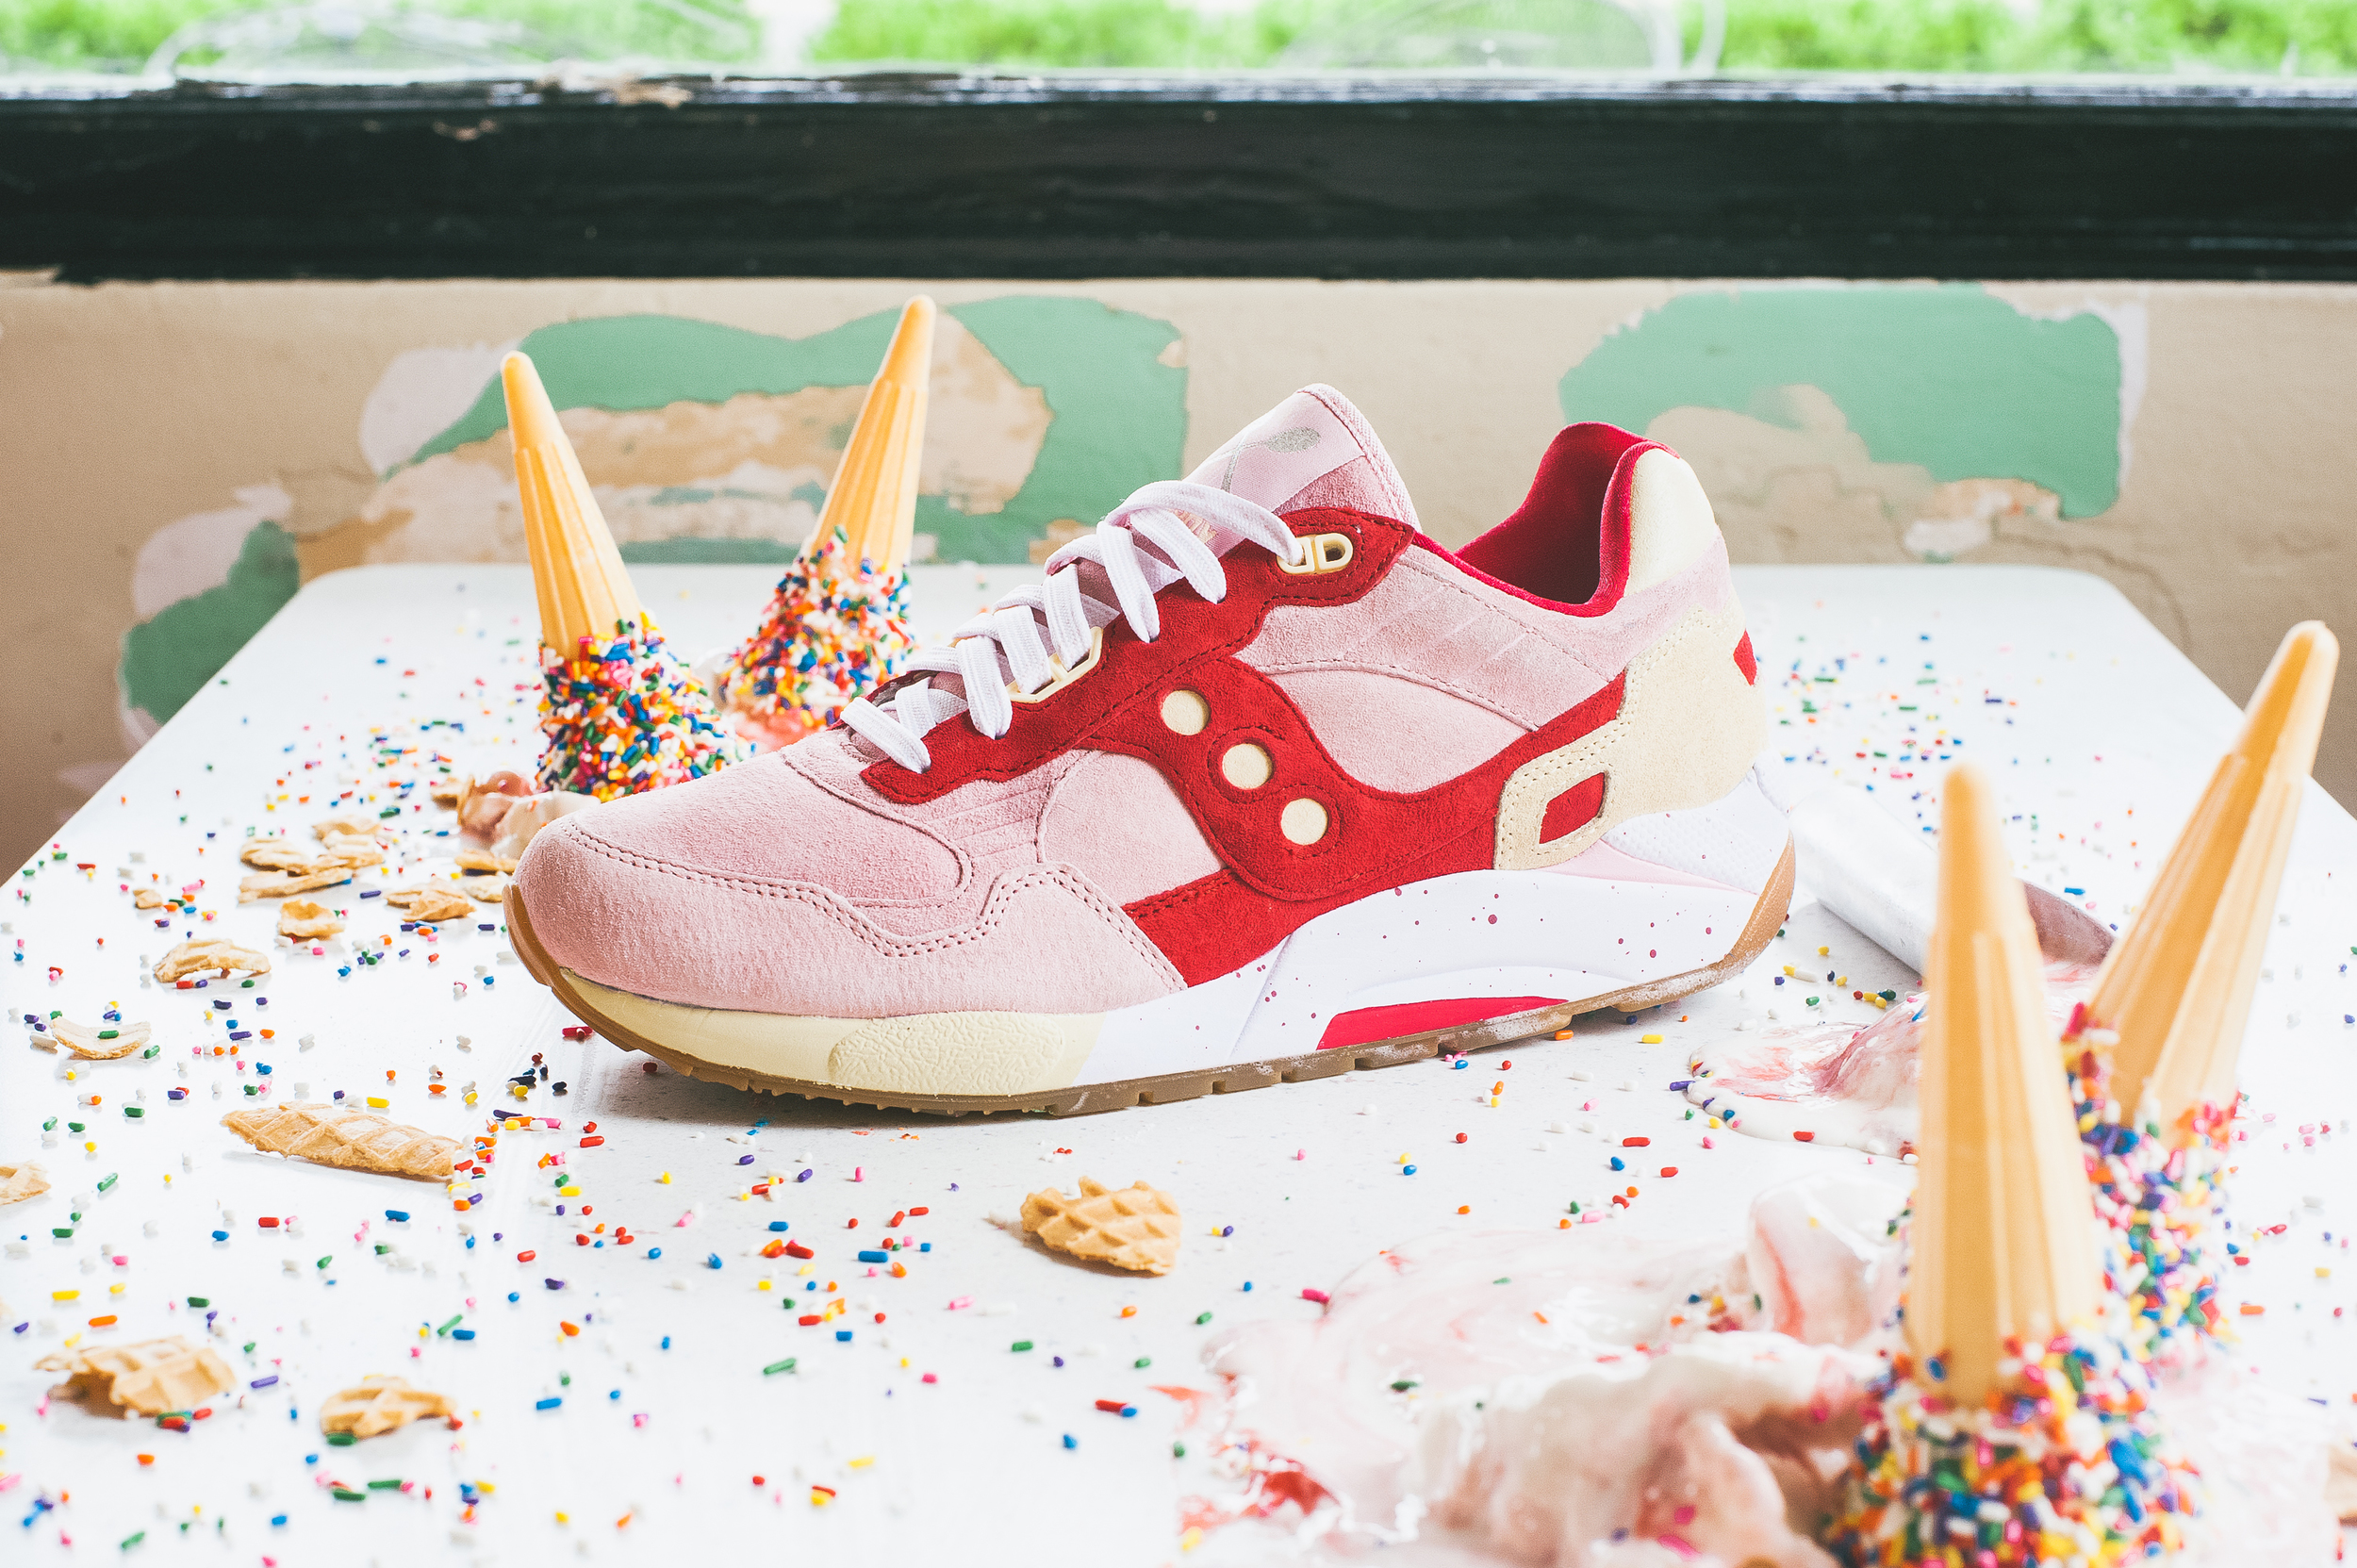 Saucony Originals Scoops Pack Dustin Guidry Photography 47.jpg